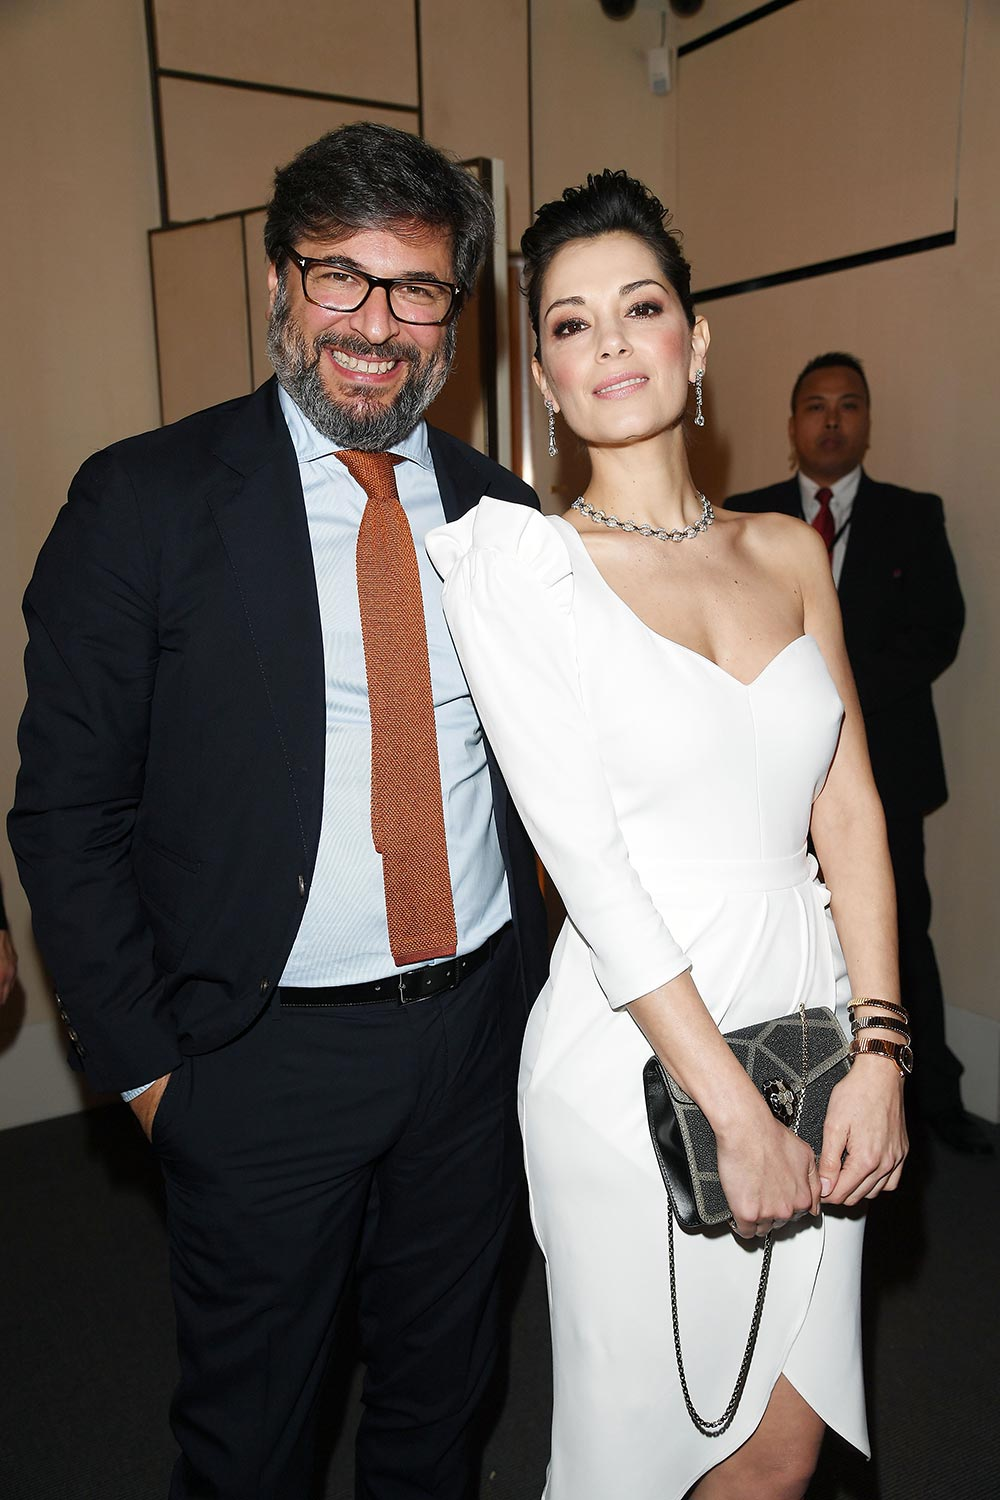 Bulgari Basel Press Party - Giorgia Surina - Hair & makeup Massimo Serini